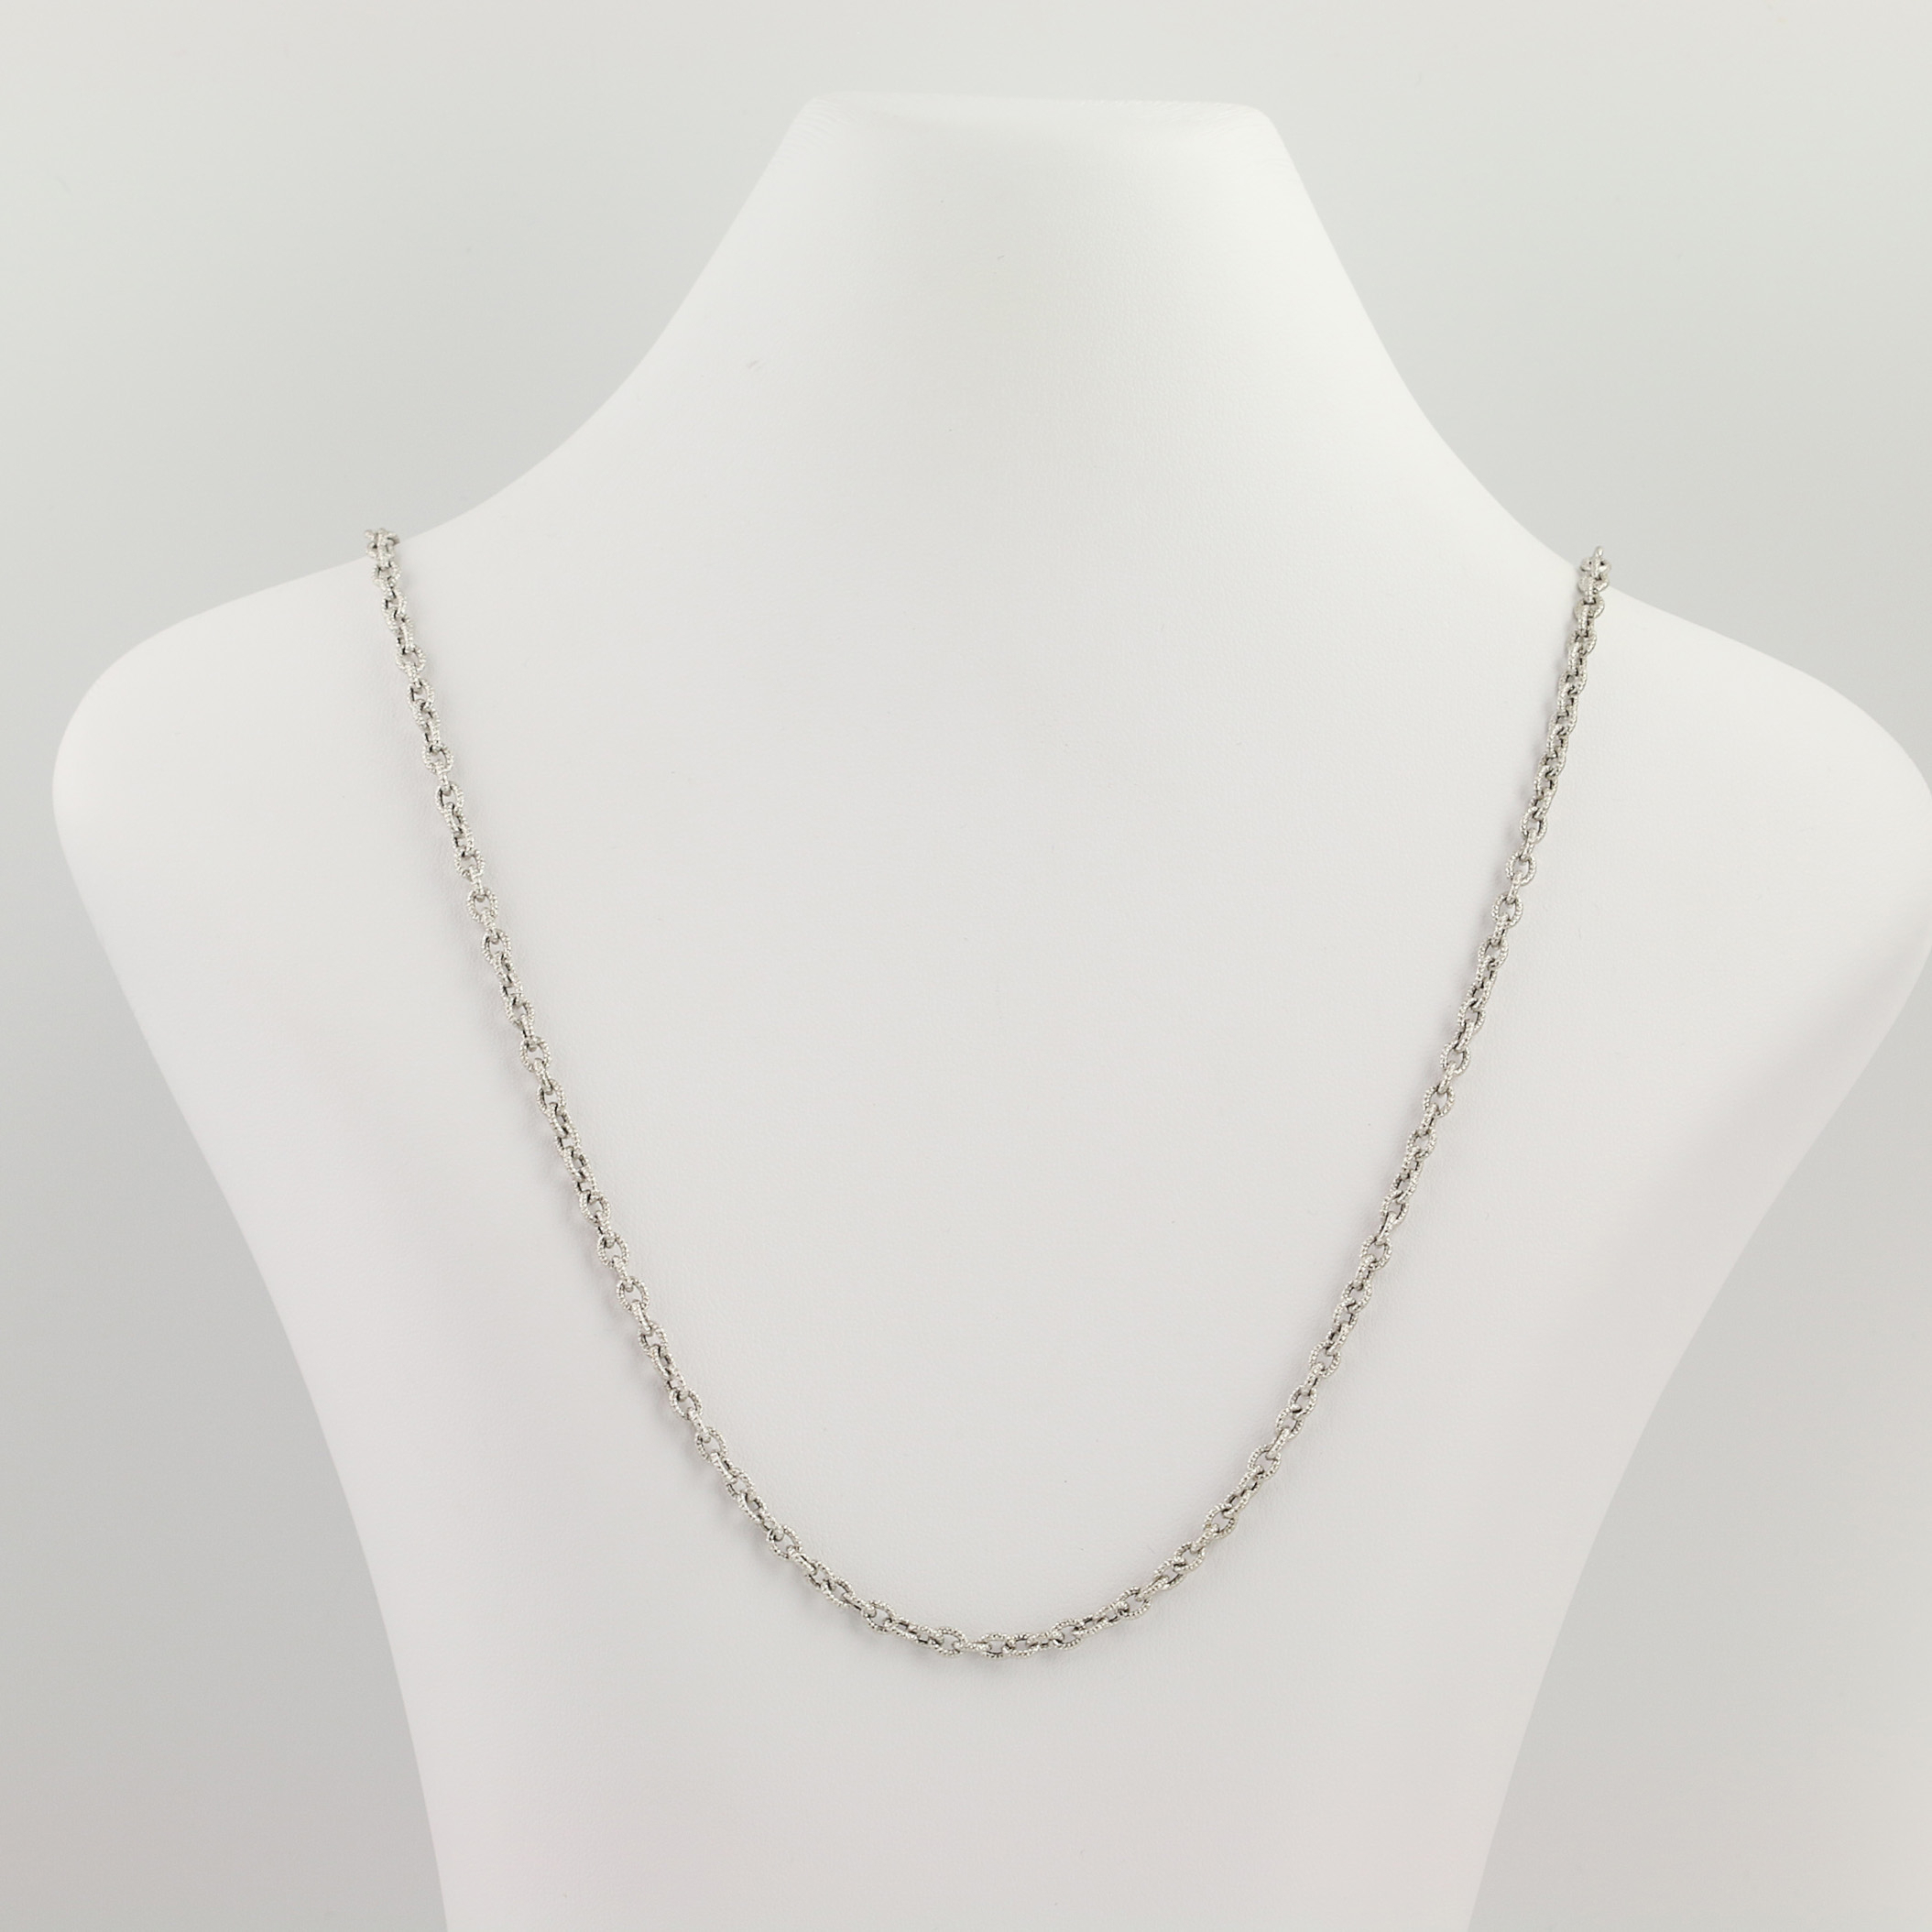 "Textured Cable Chain Necklace 28"" 18K White Gold Long Length High Karat In Newest Long Link Cable Chain Necklaces (View 8 of 25)"